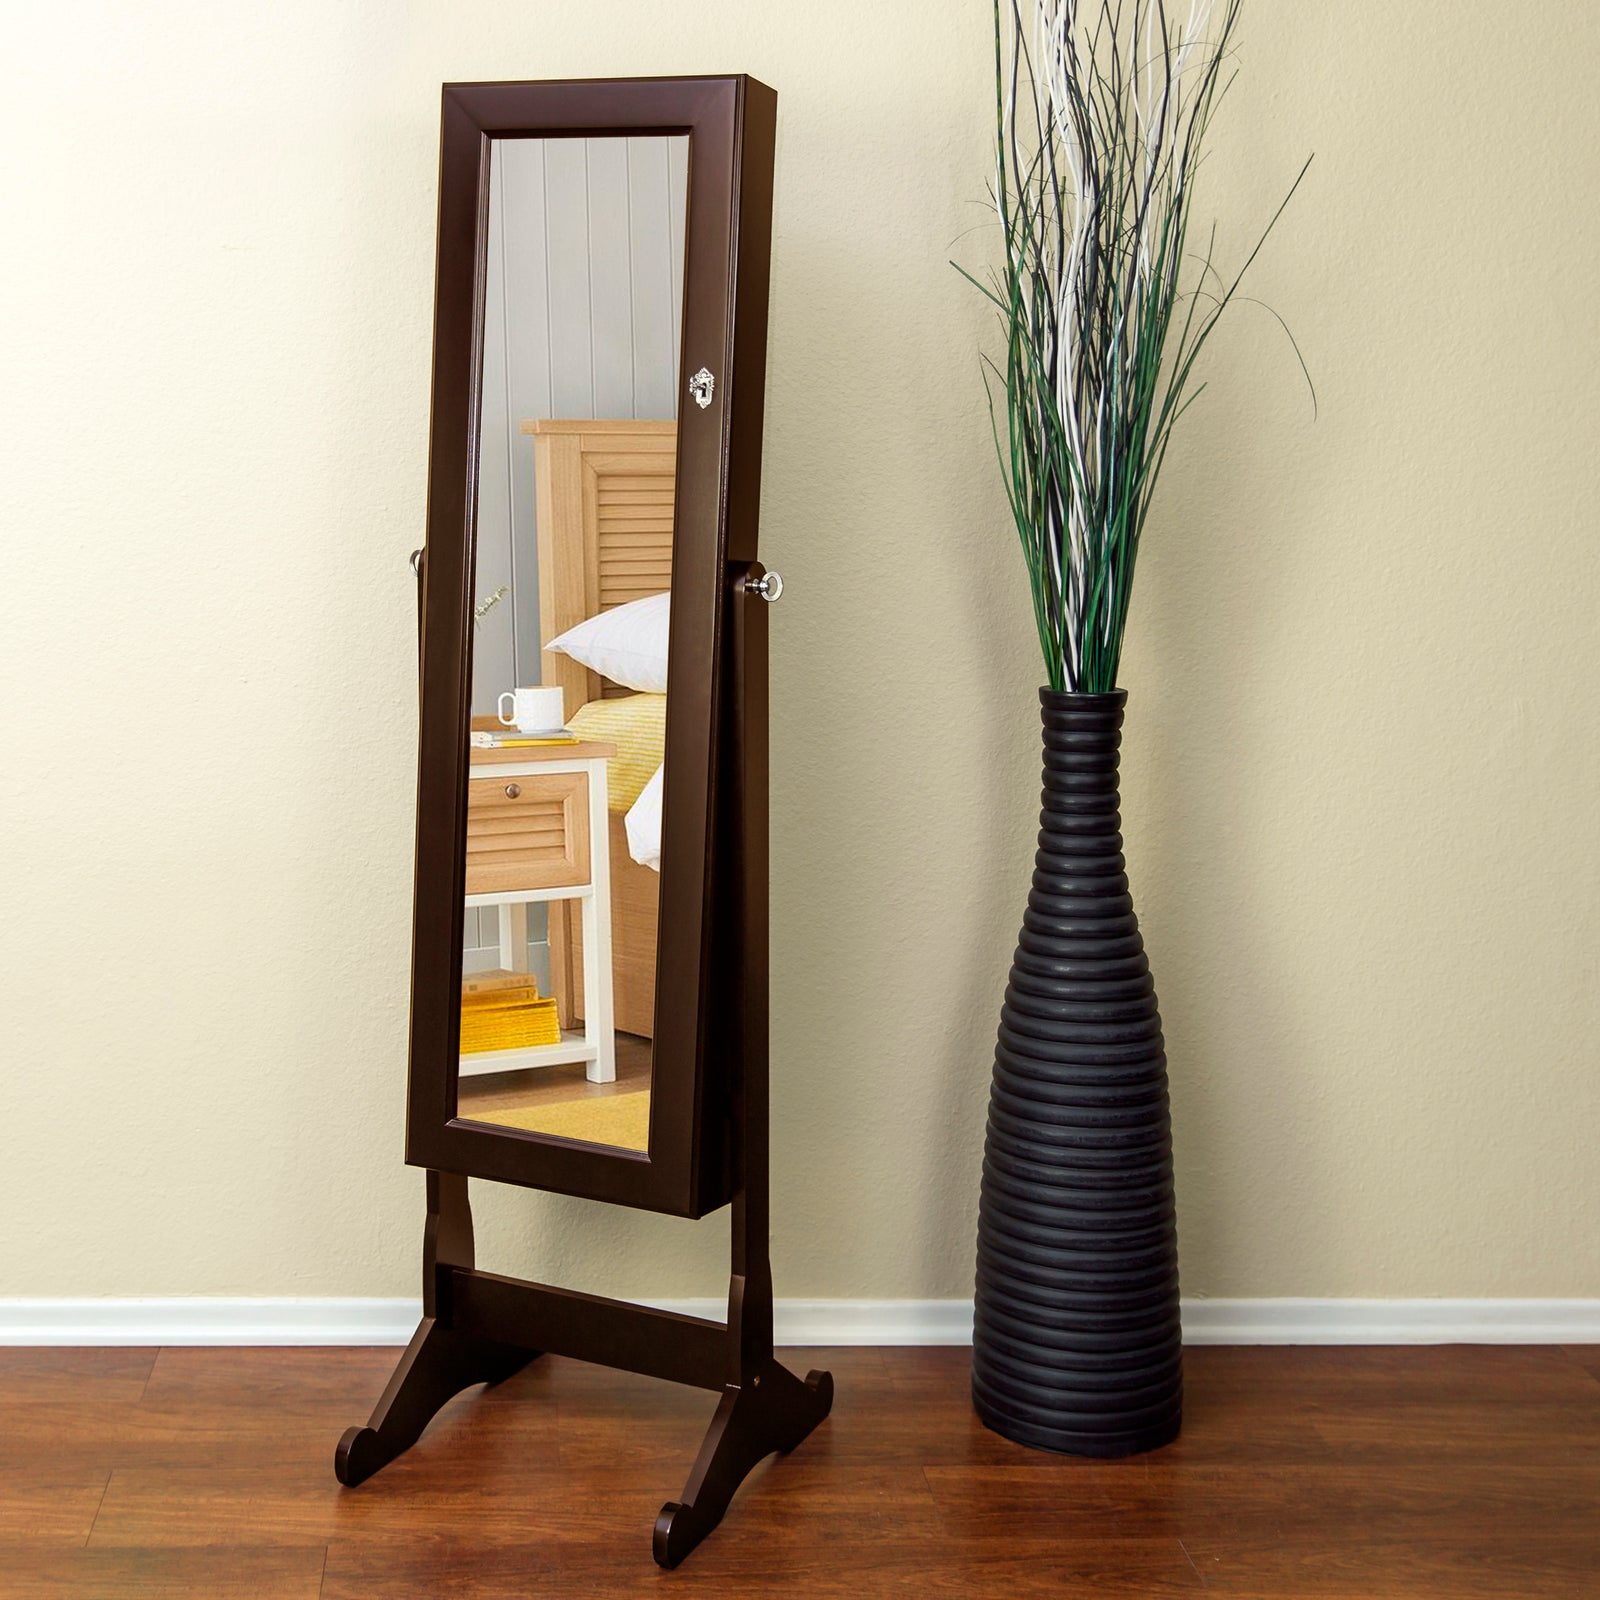 Rosy Brown Modern Large Standing Floor Mirror with Jewelry Storage Cabinet 3 Color